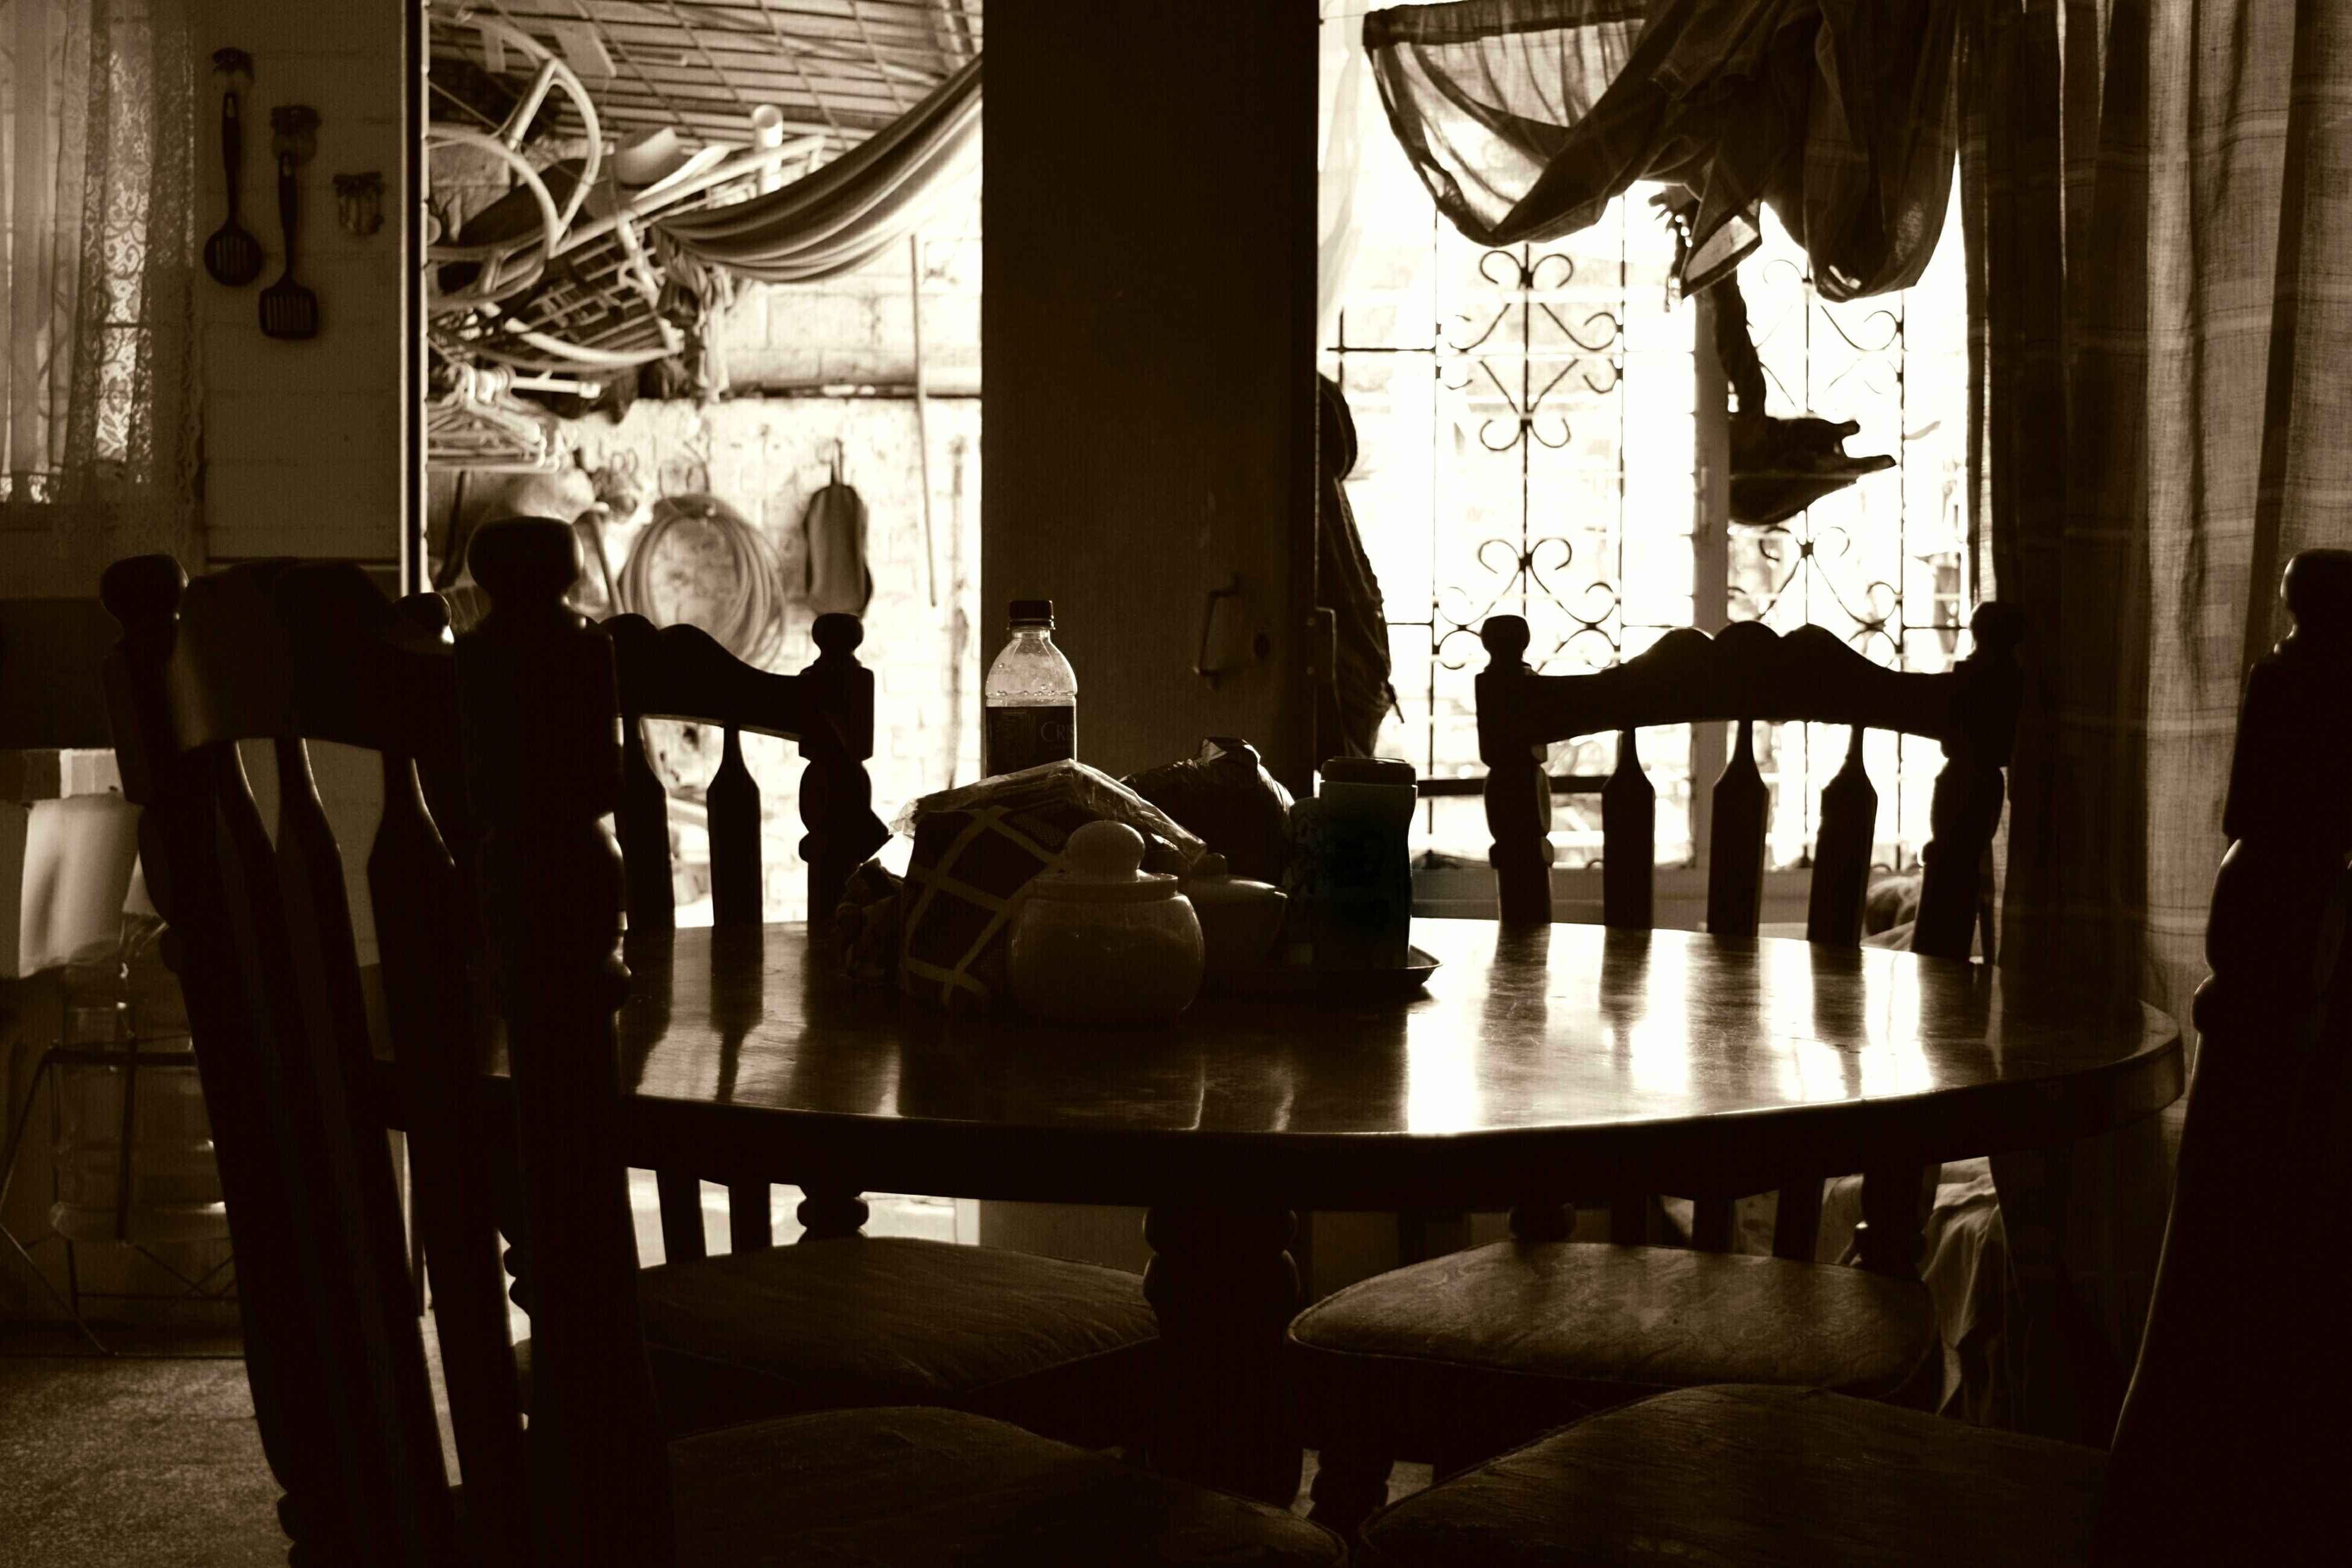 indoors, chair, table, restaurant, window, sitting, home interior, shadow, sunlight, silhouette, men, architecture, built structure, glass - material, lifestyles, absence, reflection, person, empty